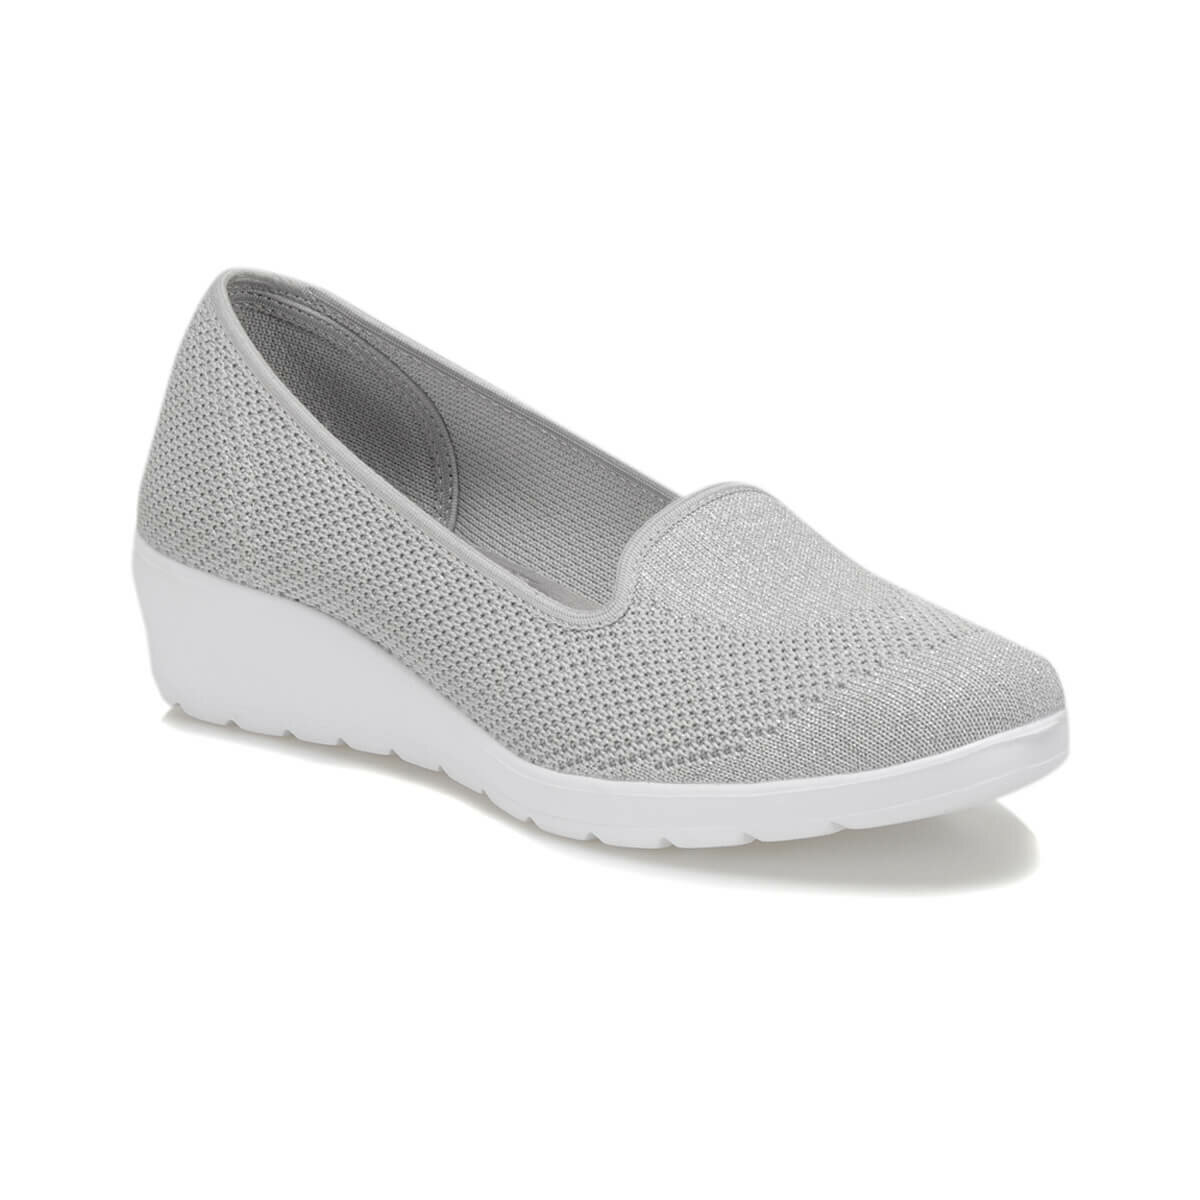 FLO 91.150717.Z Silver Women Shoes Polaris